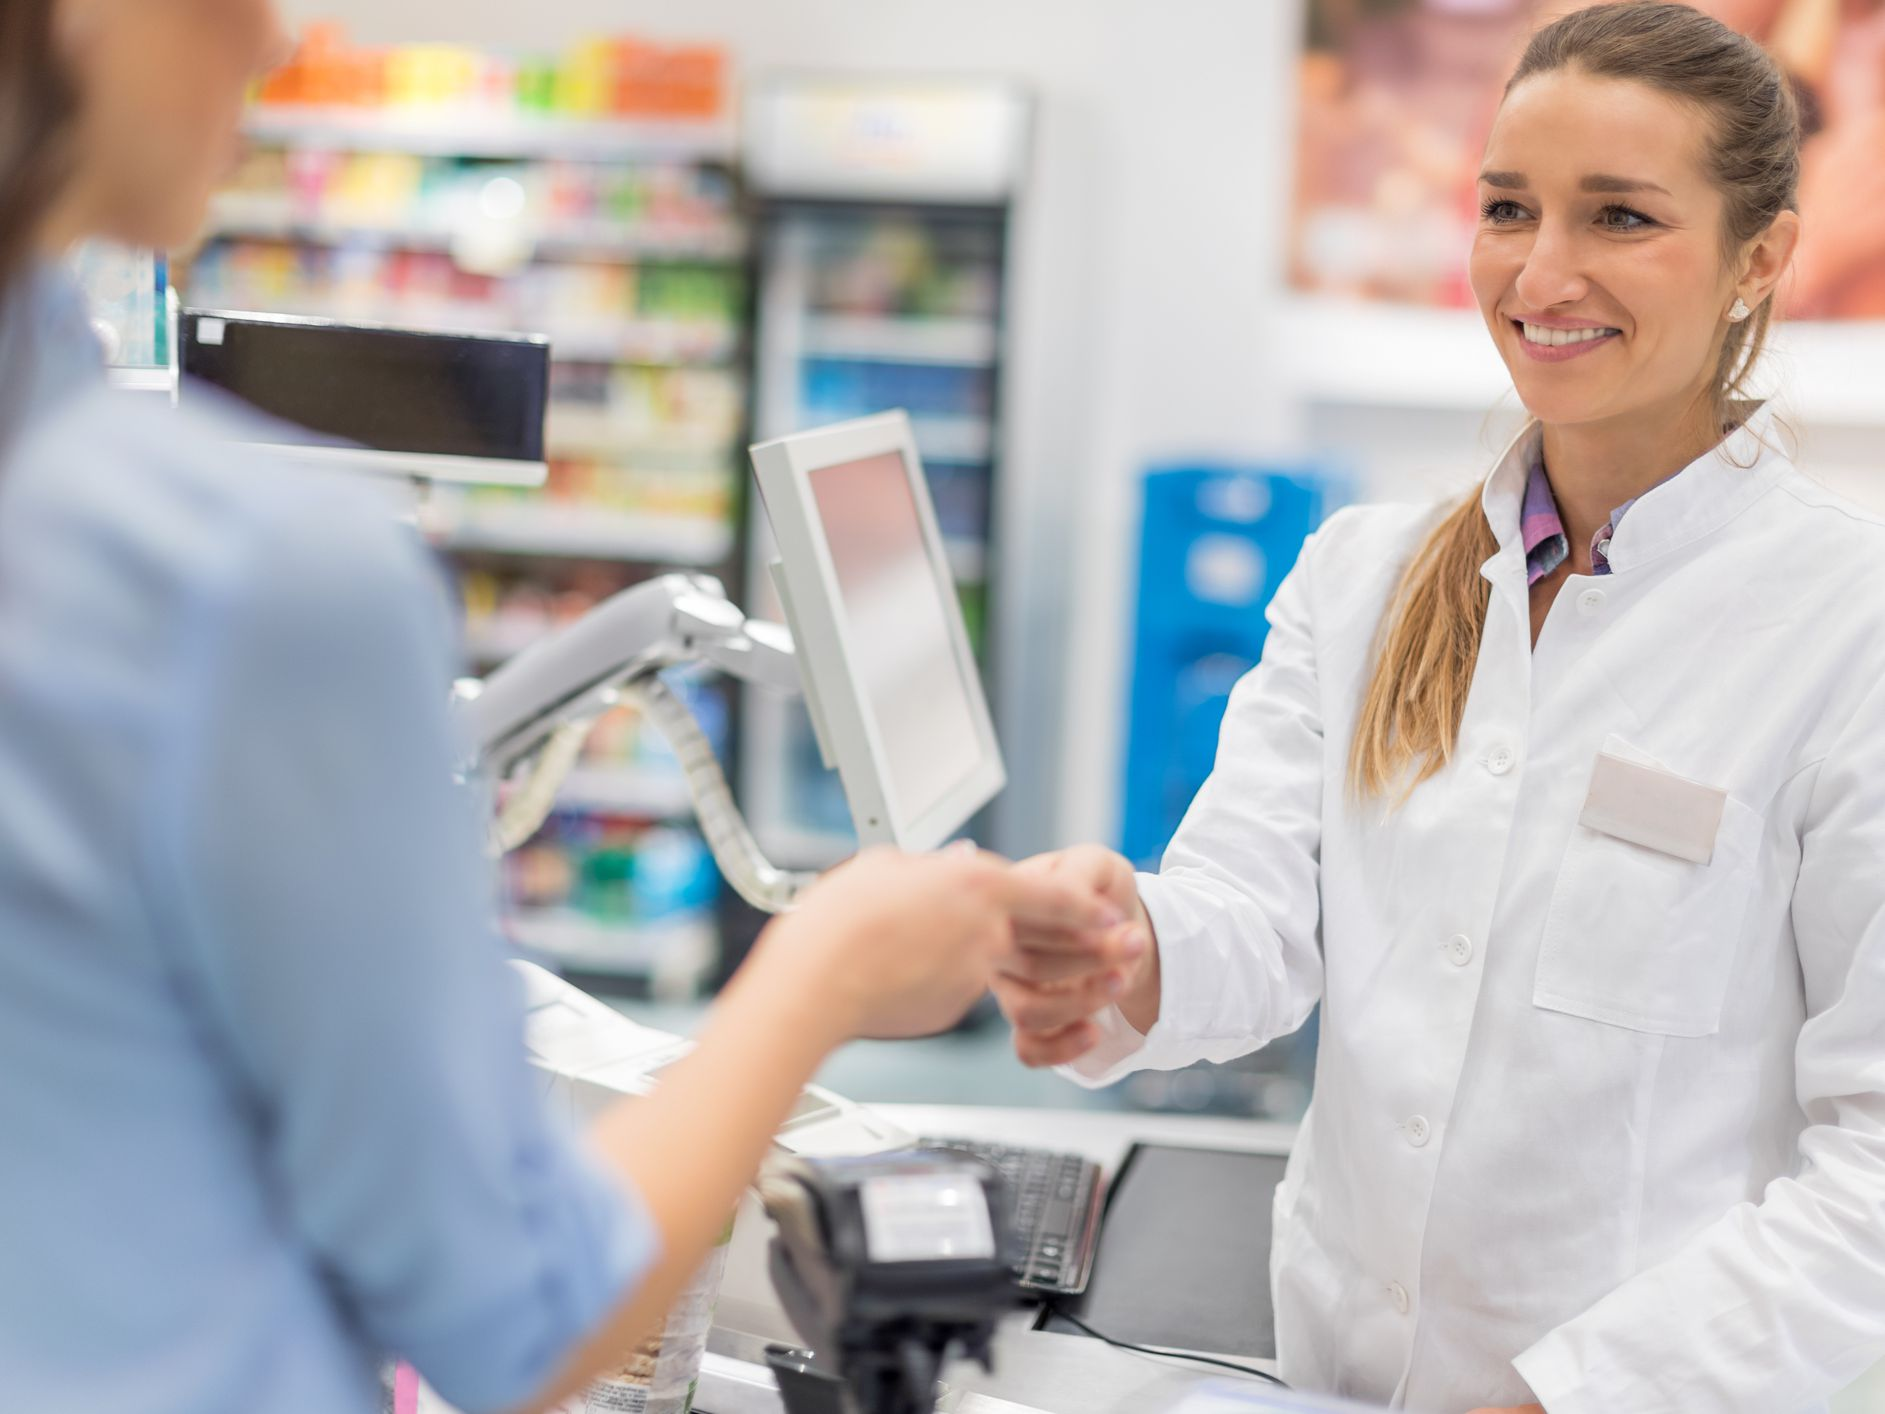 Tips for Choosing Health Care